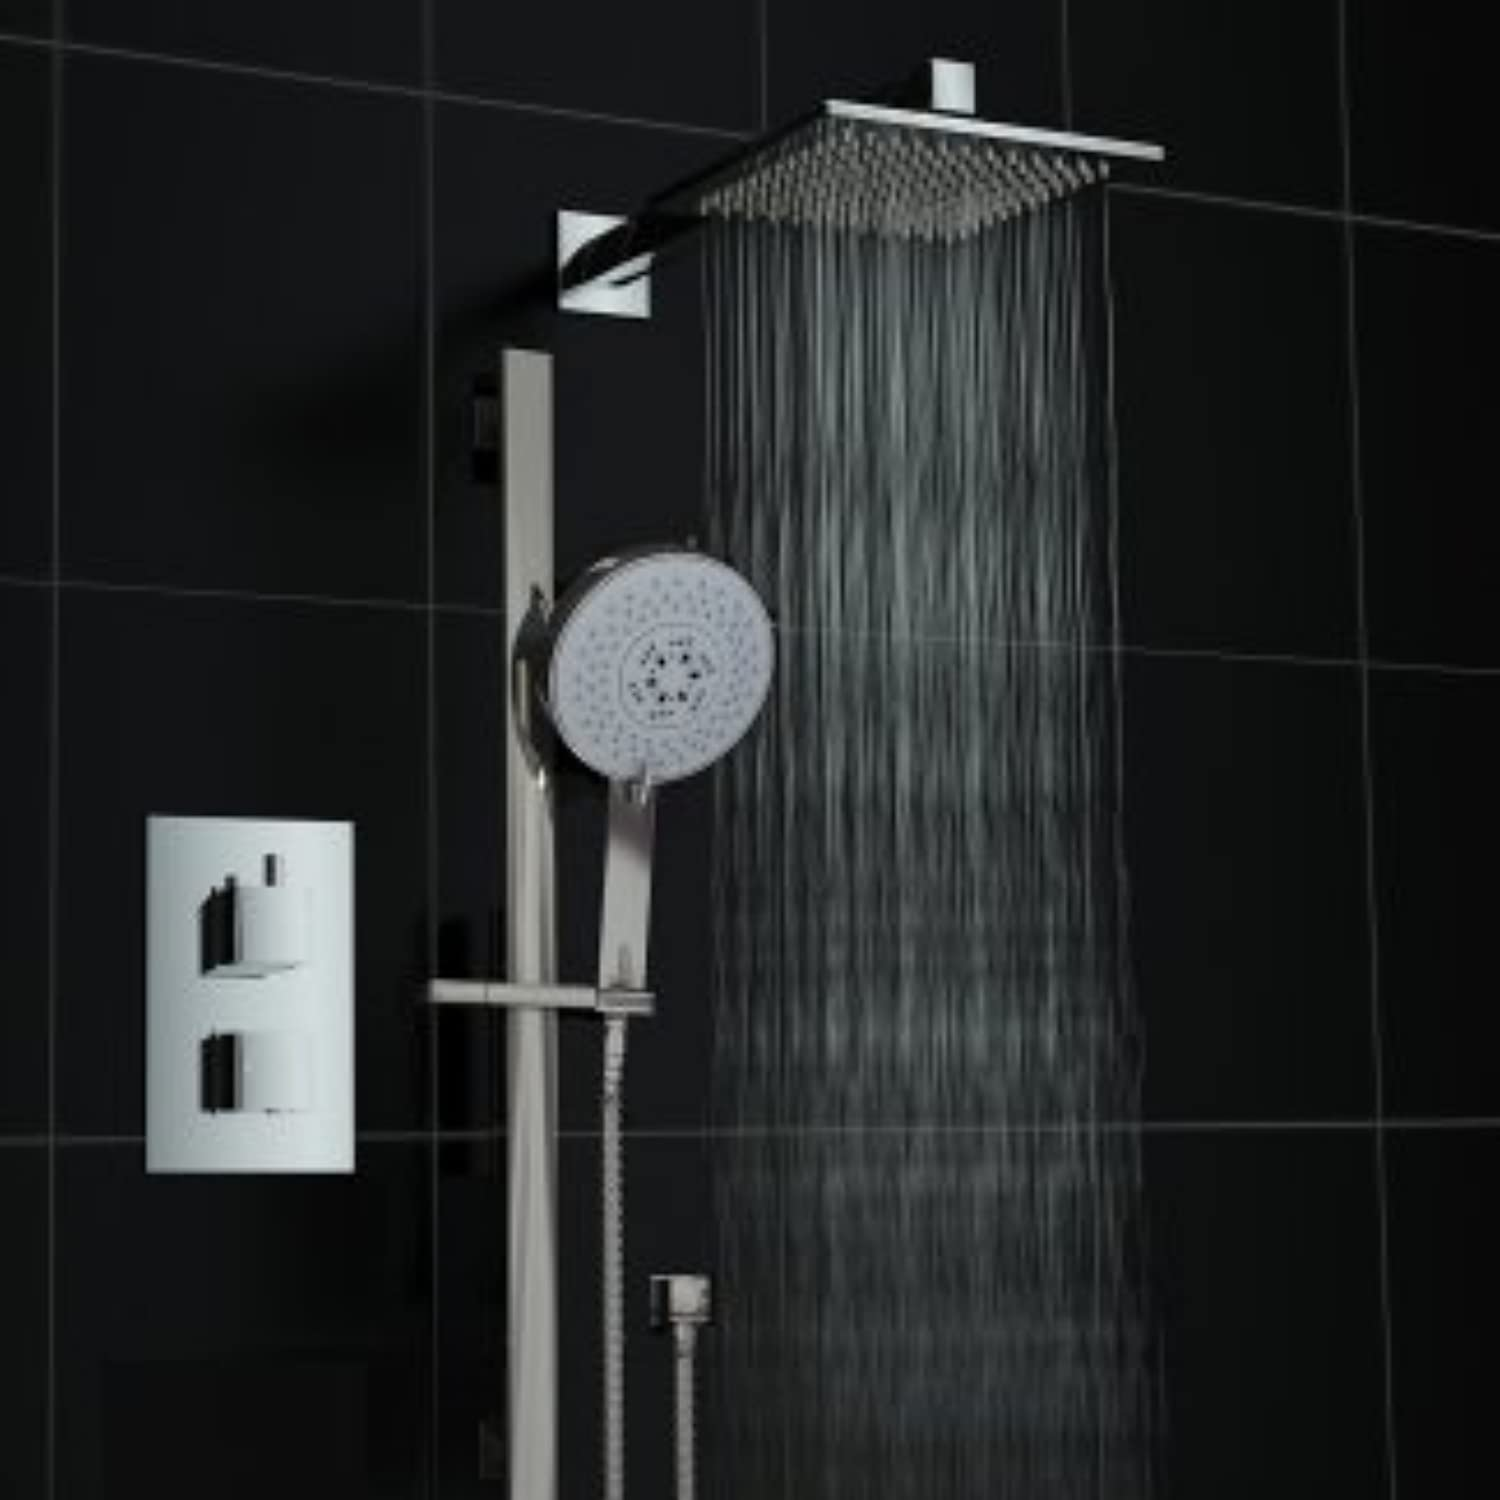 Twin 2 Way Square Concealed Thermostatic Shower Mixer Valve Rail Set